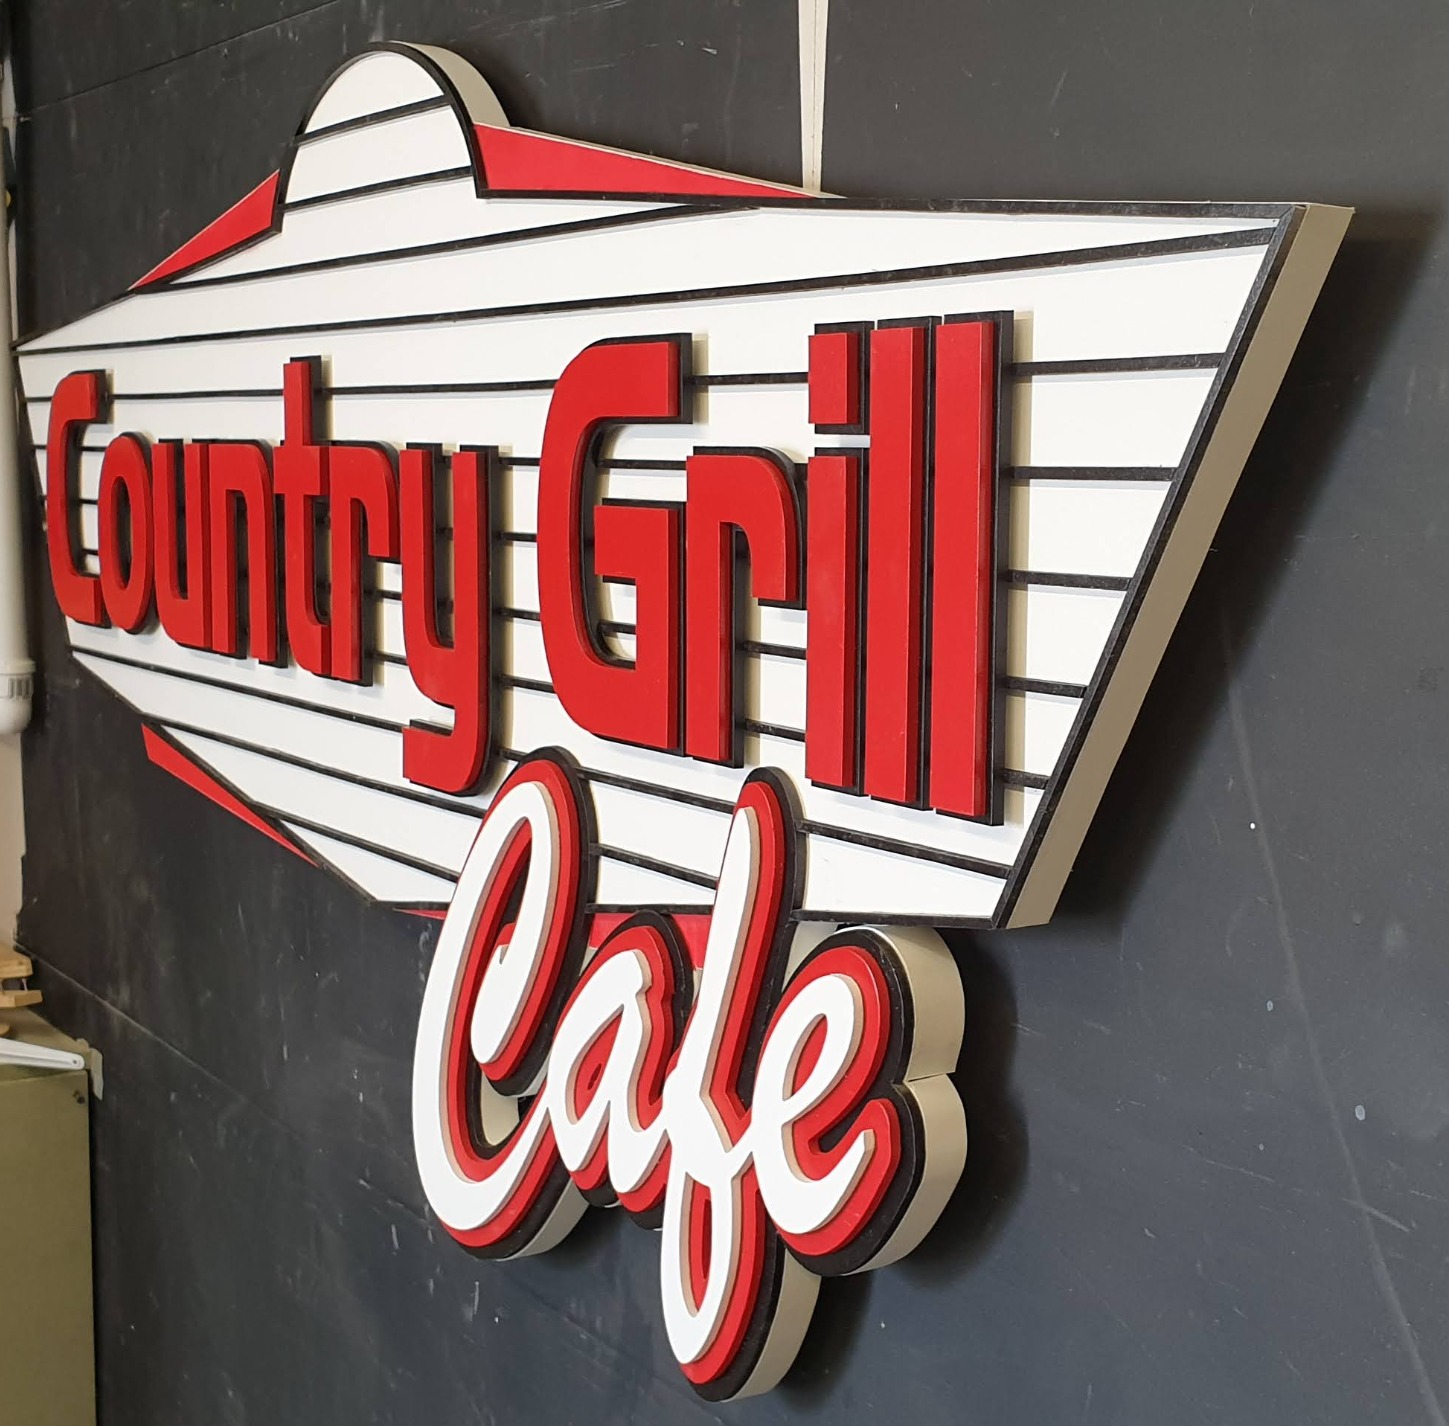 Country Grill Cafe sign